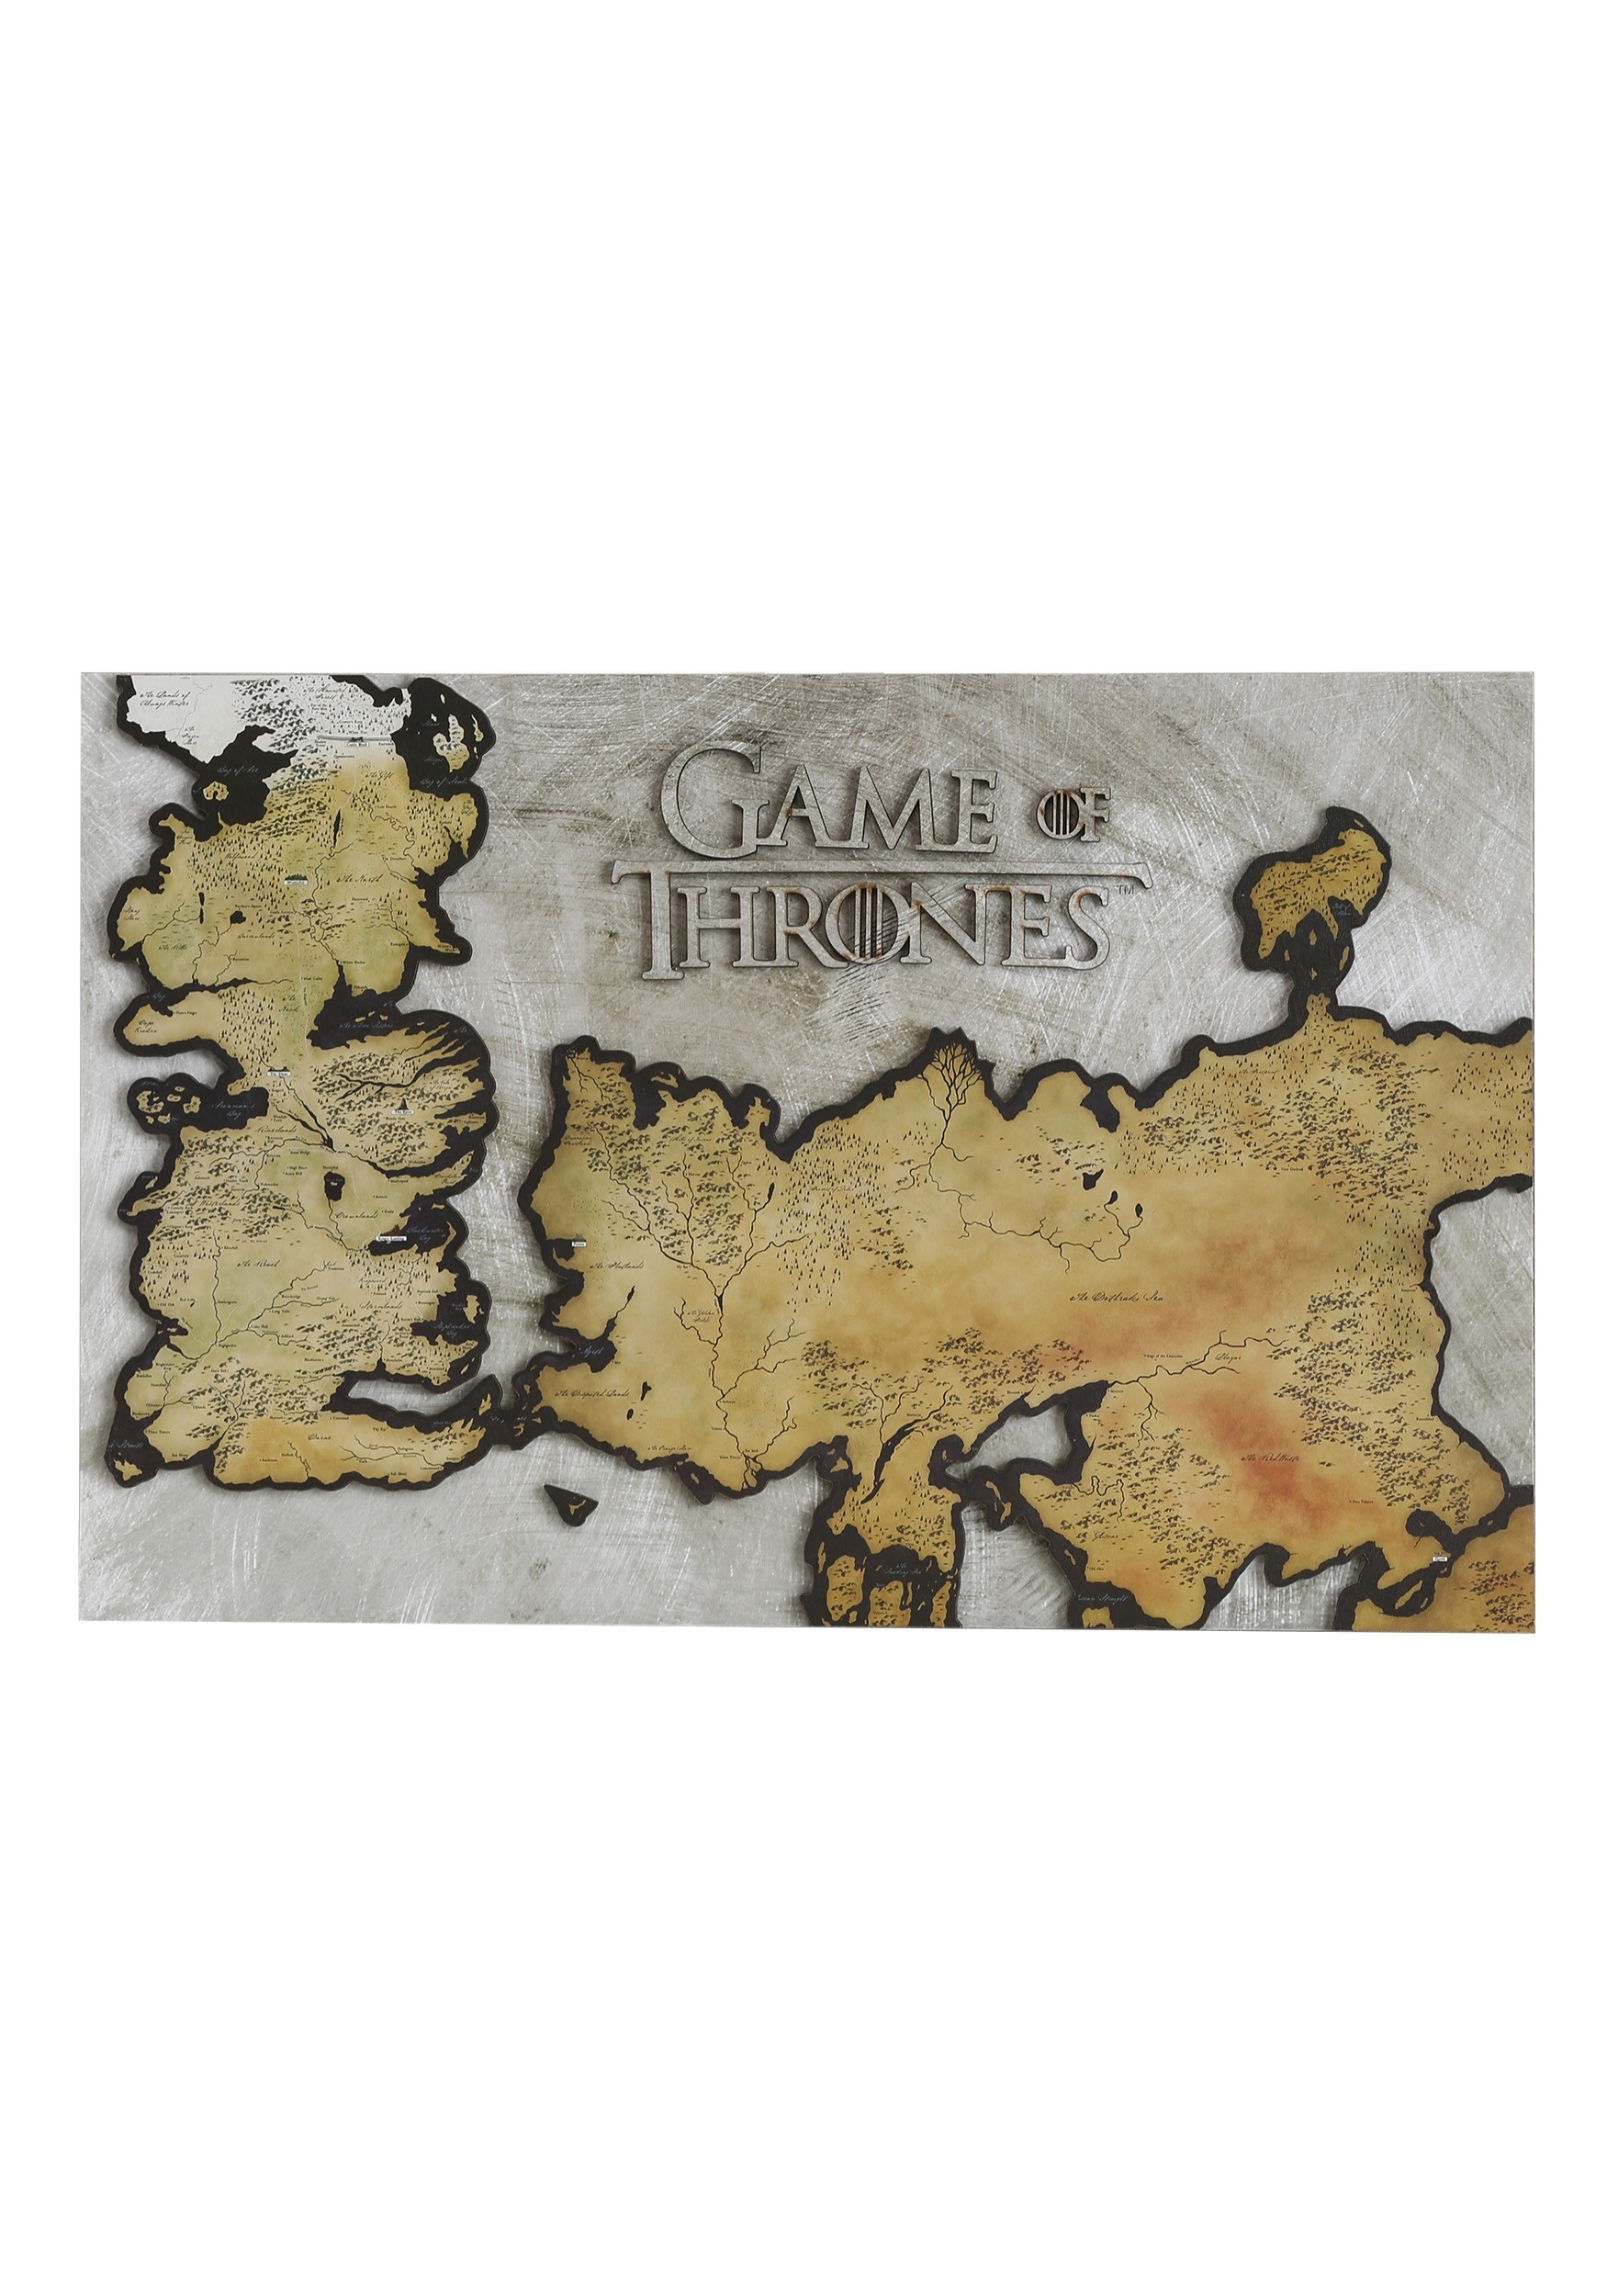 Game of Thrones Westeros Map Wall Décor Game Of Thrones Wall Map on game of thrones maps hbo, game of thrones win or die, game of thrones white walkers, game of thrones posters, game of thrones globe, game of thrones winter, game of thrones book, game of thrones diagram, game of thrones pins, game of thrones letter, game of thrones castles, game of thrones magazine, game of thrones review, game of thrones kit, game of thrones garden, game of thrones hardcover, game of thrones table, game of thrones wildlings, game of thrones war, game of thrones maps pdf,